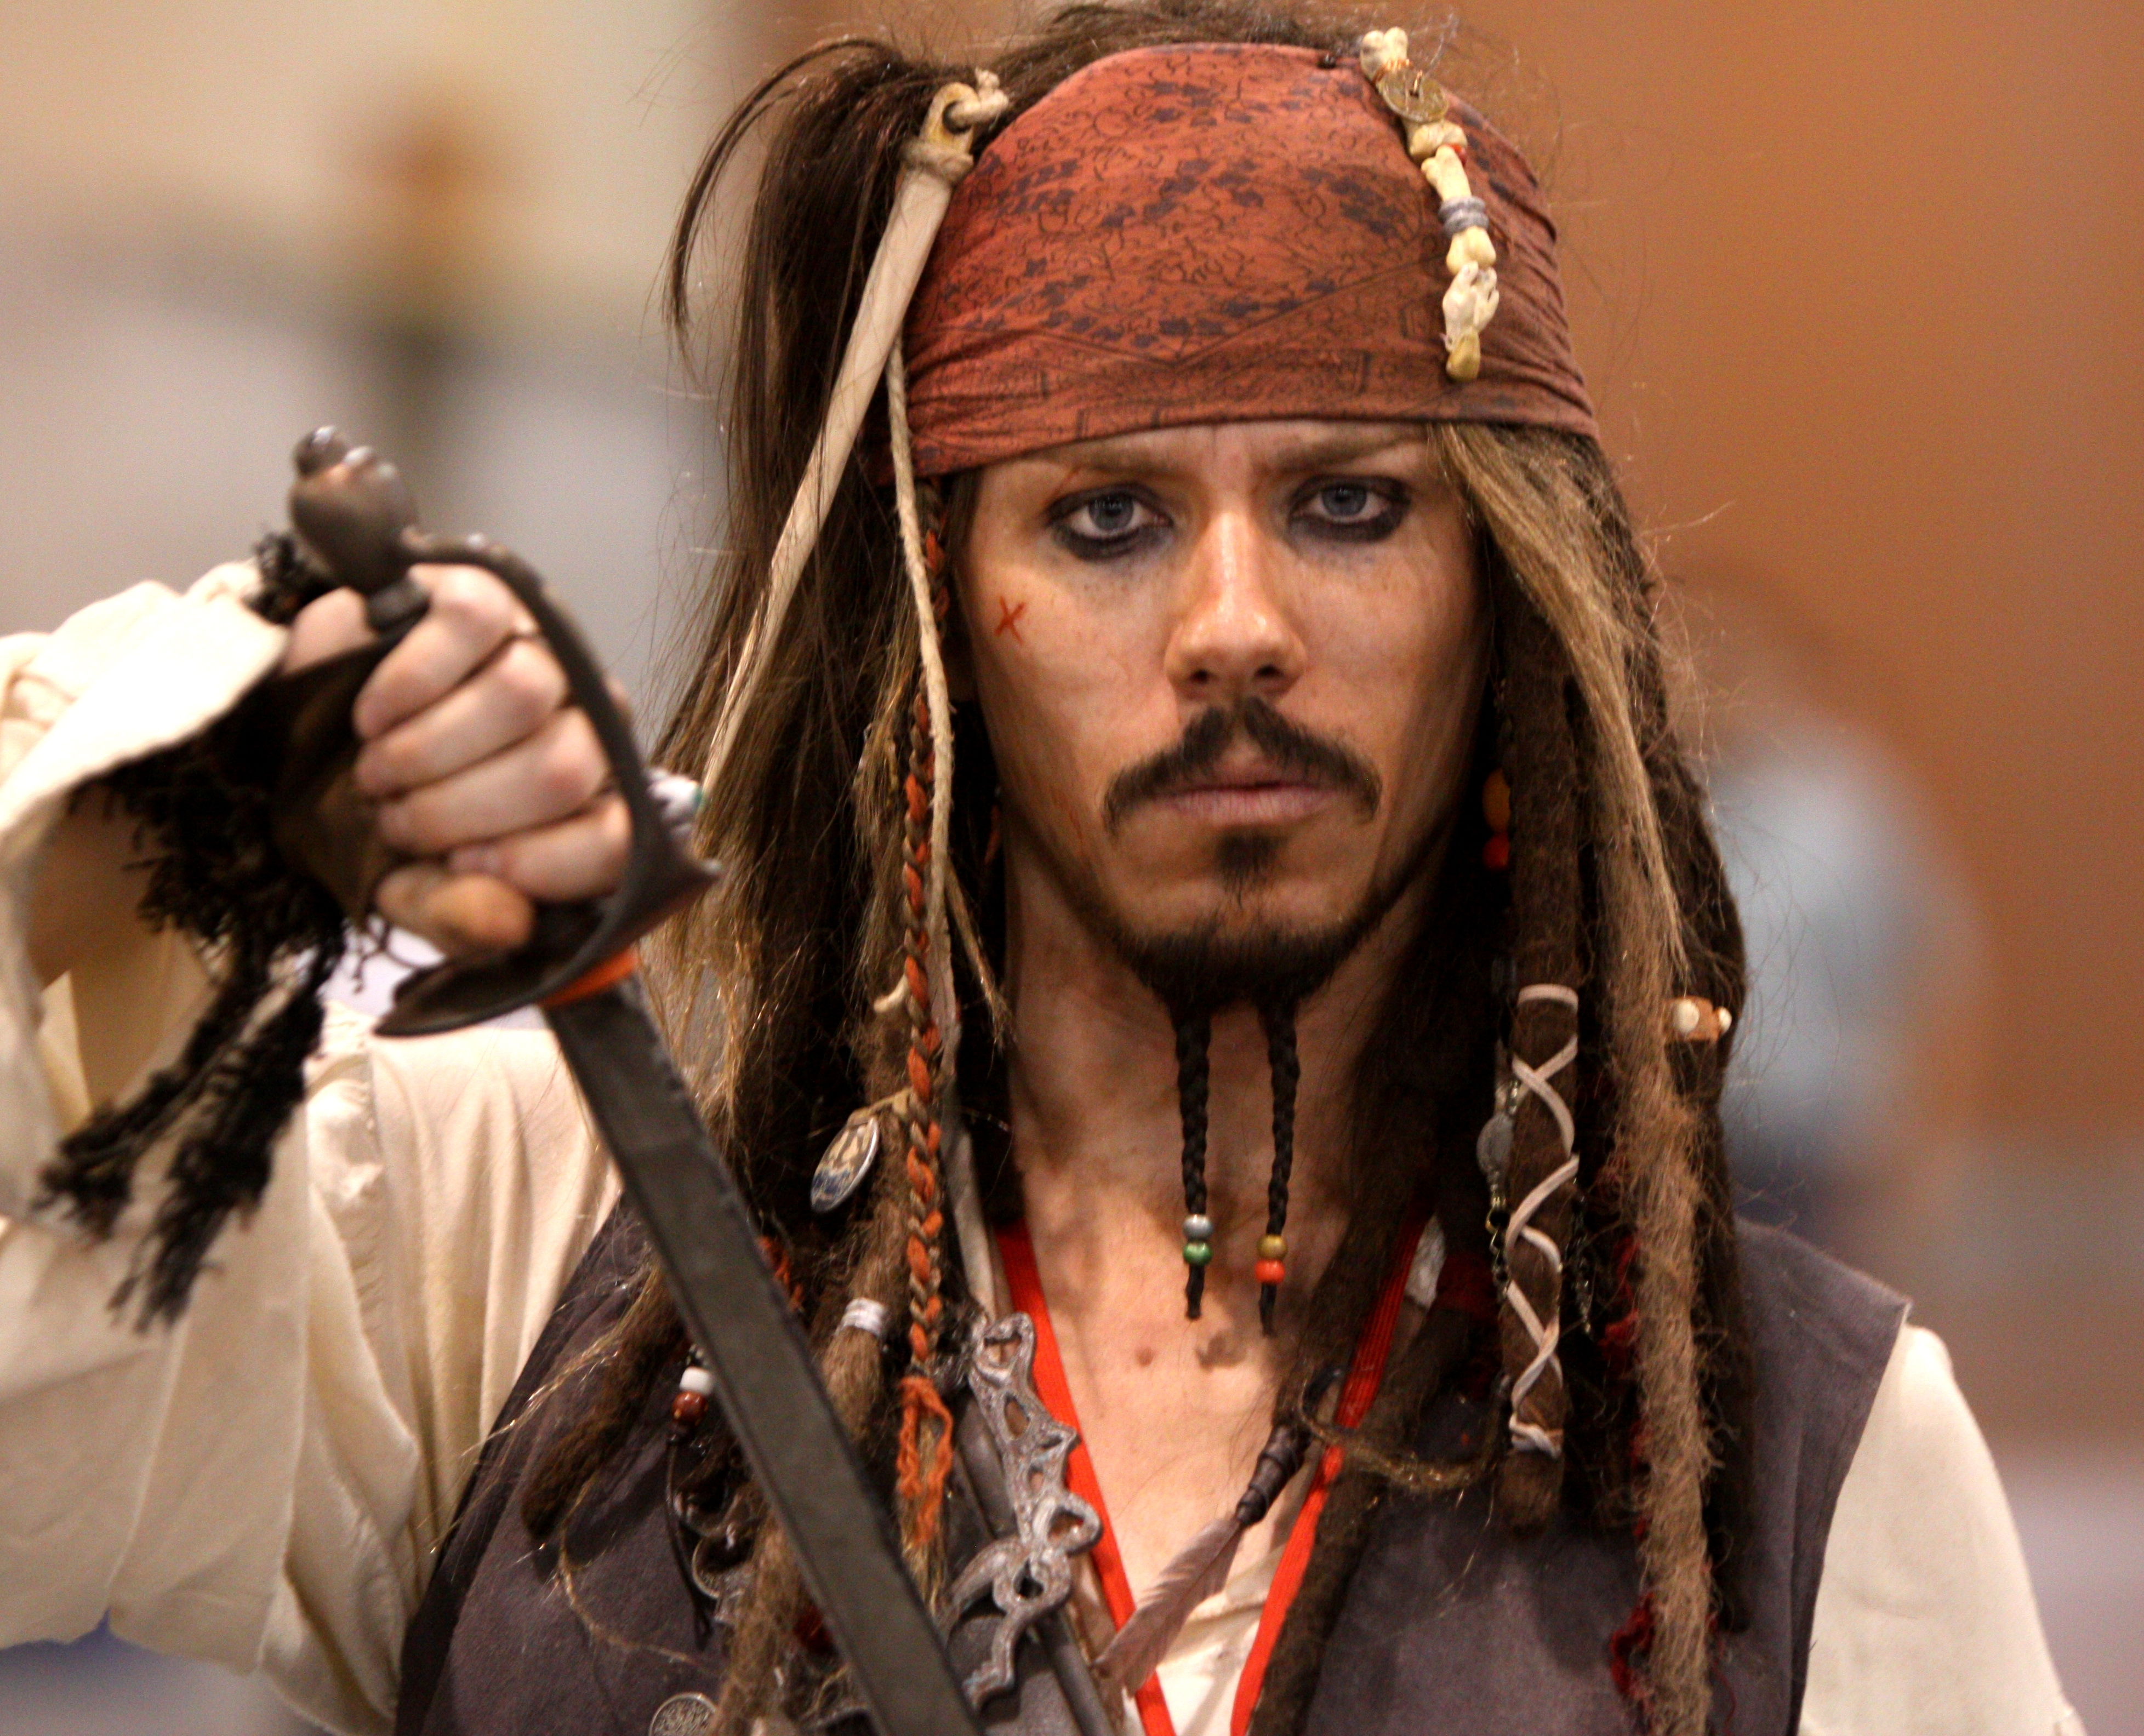 file:captain jack sparrow (5764018454) - wikimedia commons